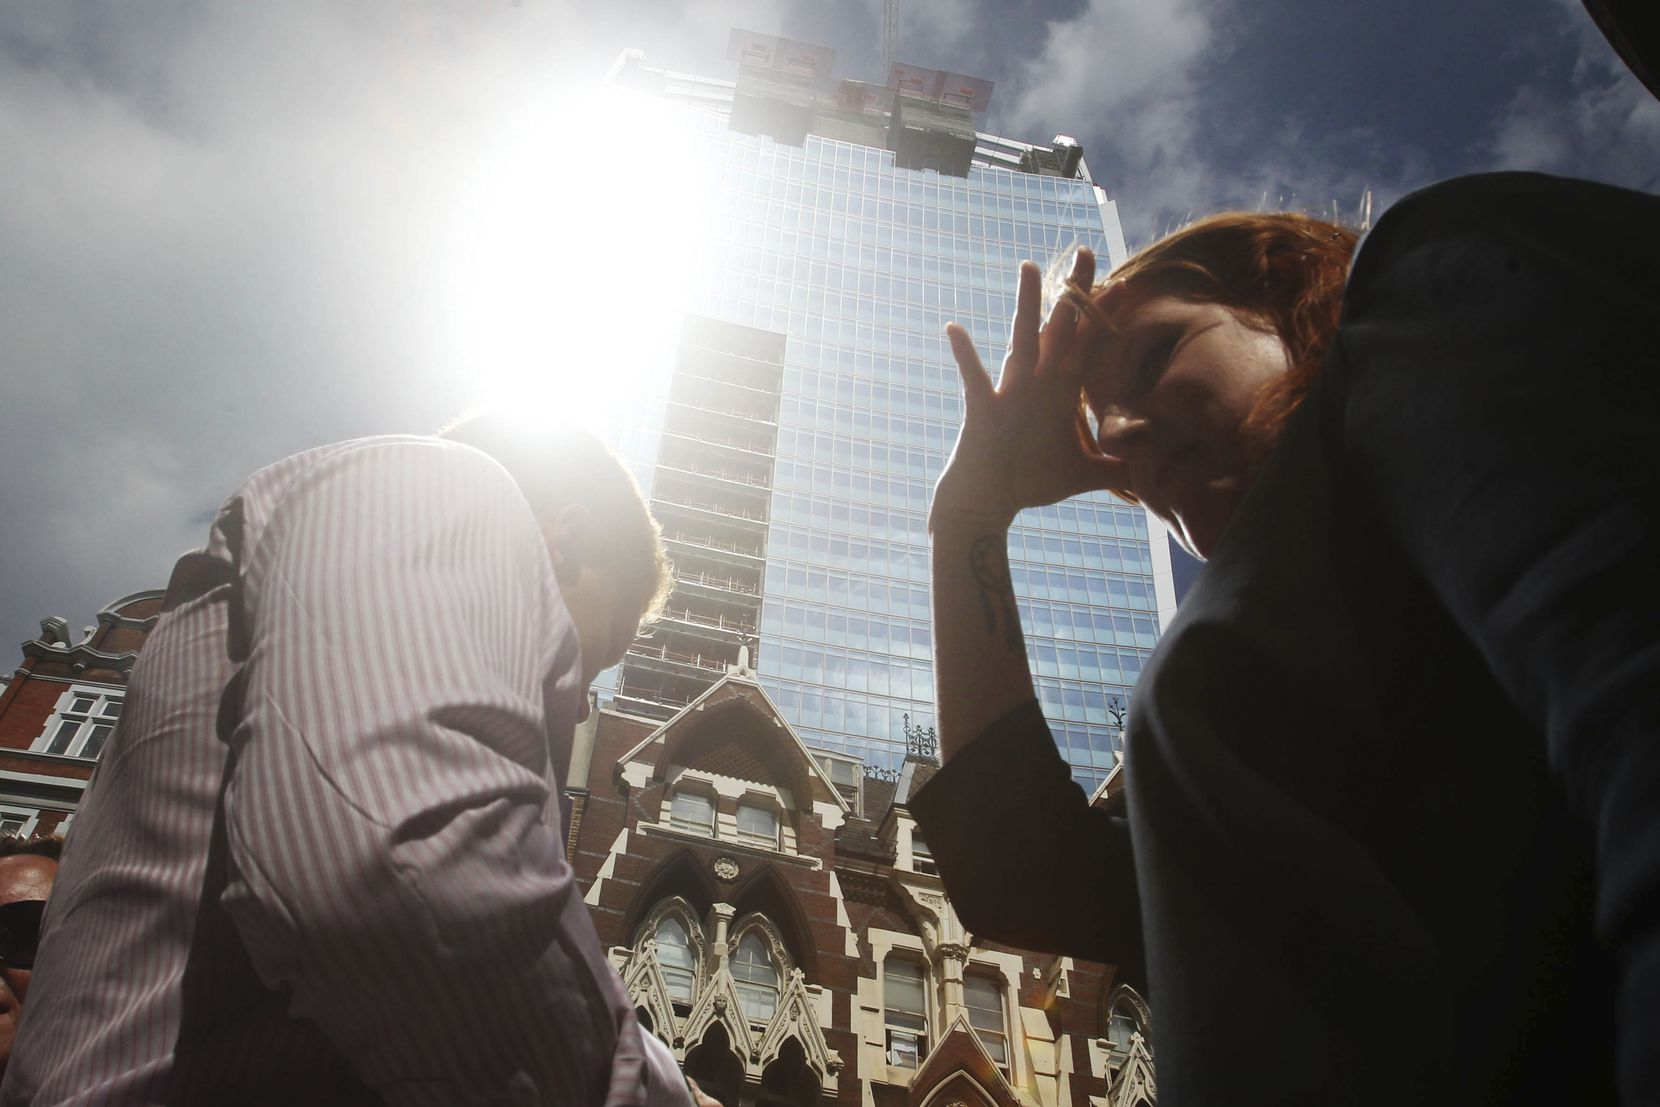 A woman shields her eyes as sunlight is reflected off the so-called Walkie Talkie building in London, in September 2013, before its glare issues were addressed.